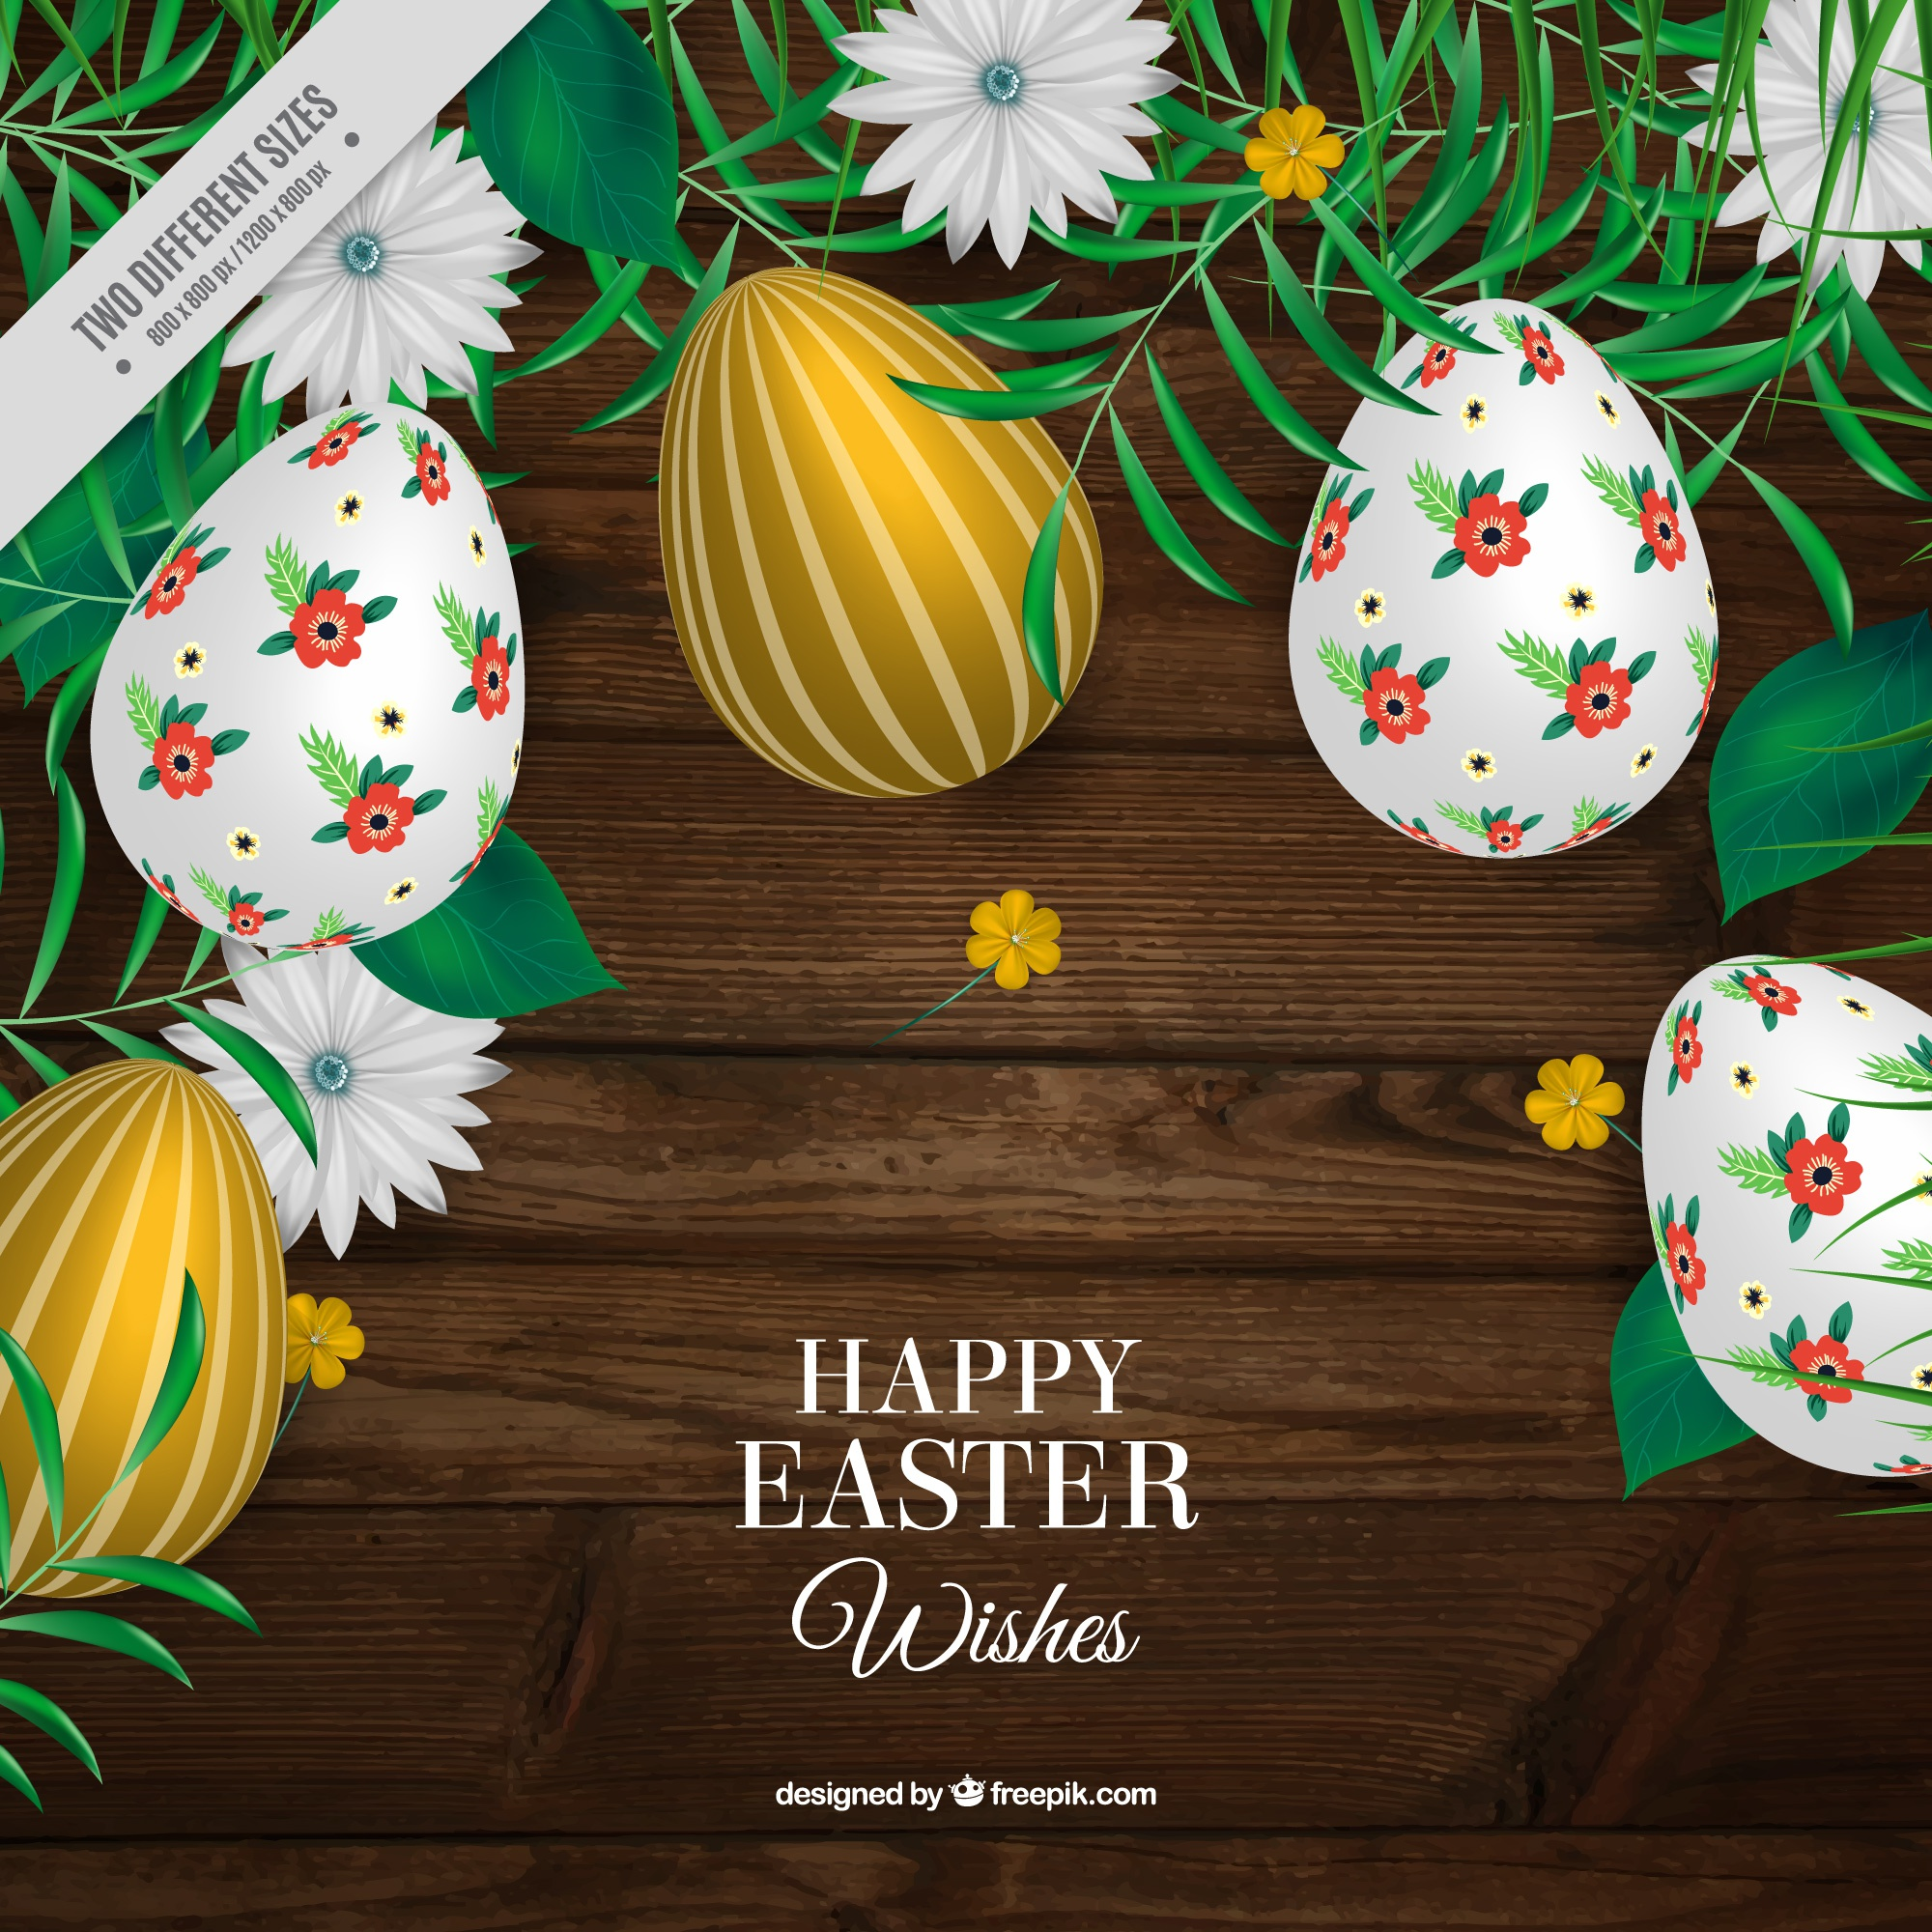 Realistic wooden background with easter eggs